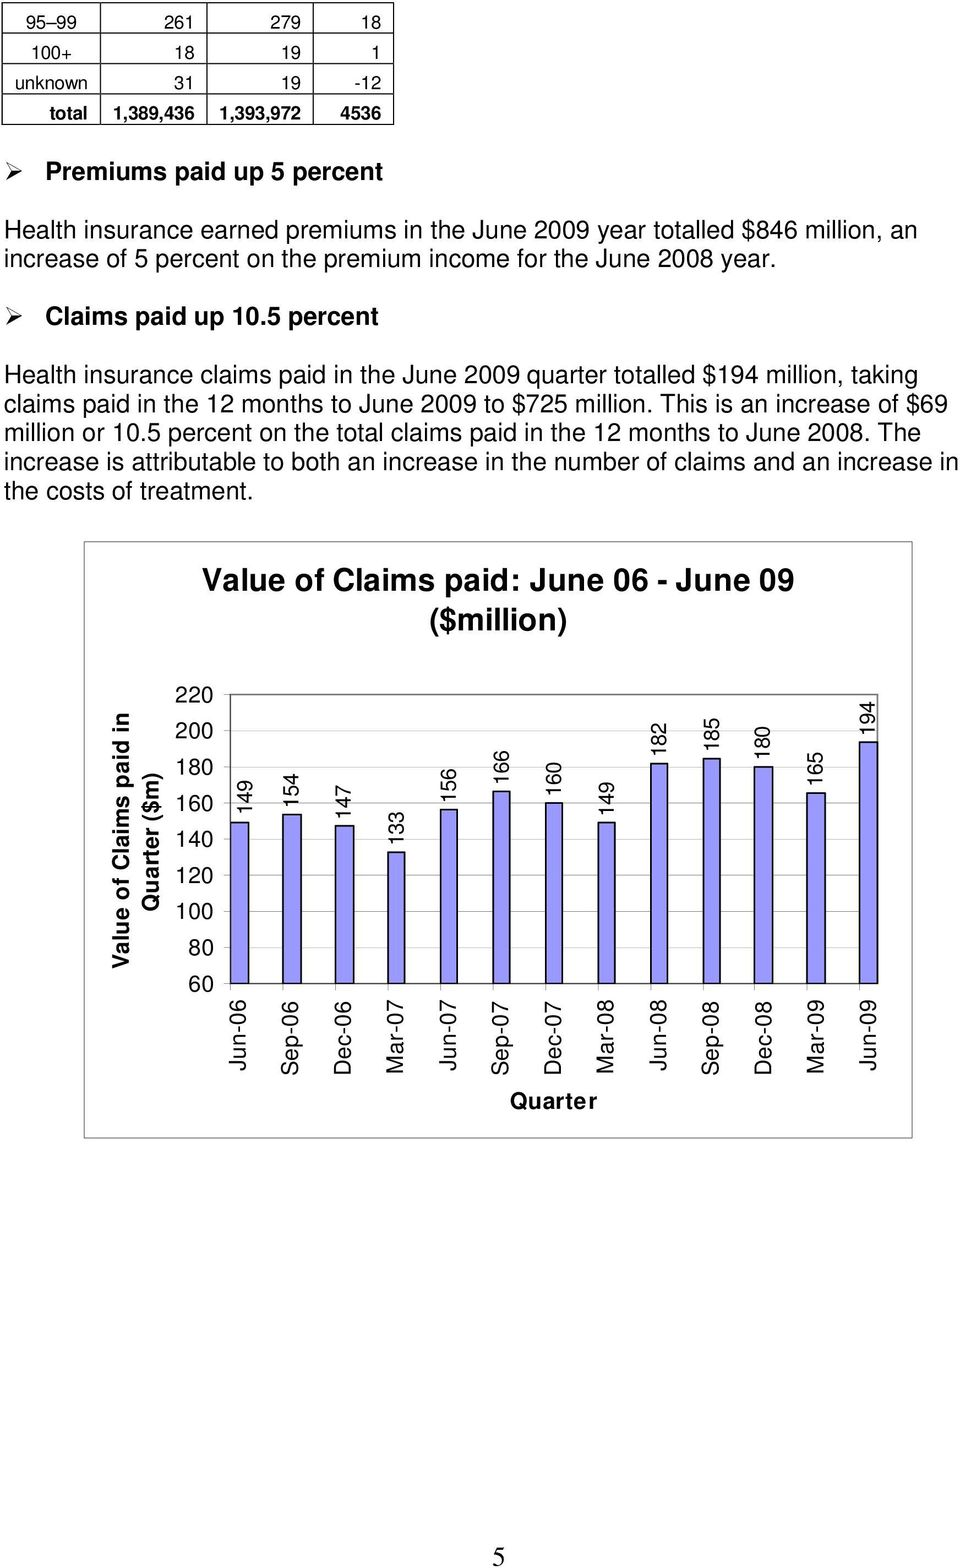 5 percent Health insurance claims paid in the June 2009 quarter totalled $194 million, taking claims paid in the 12 months to June 2009 to $725 million. This is an increase of $69 million or 10.